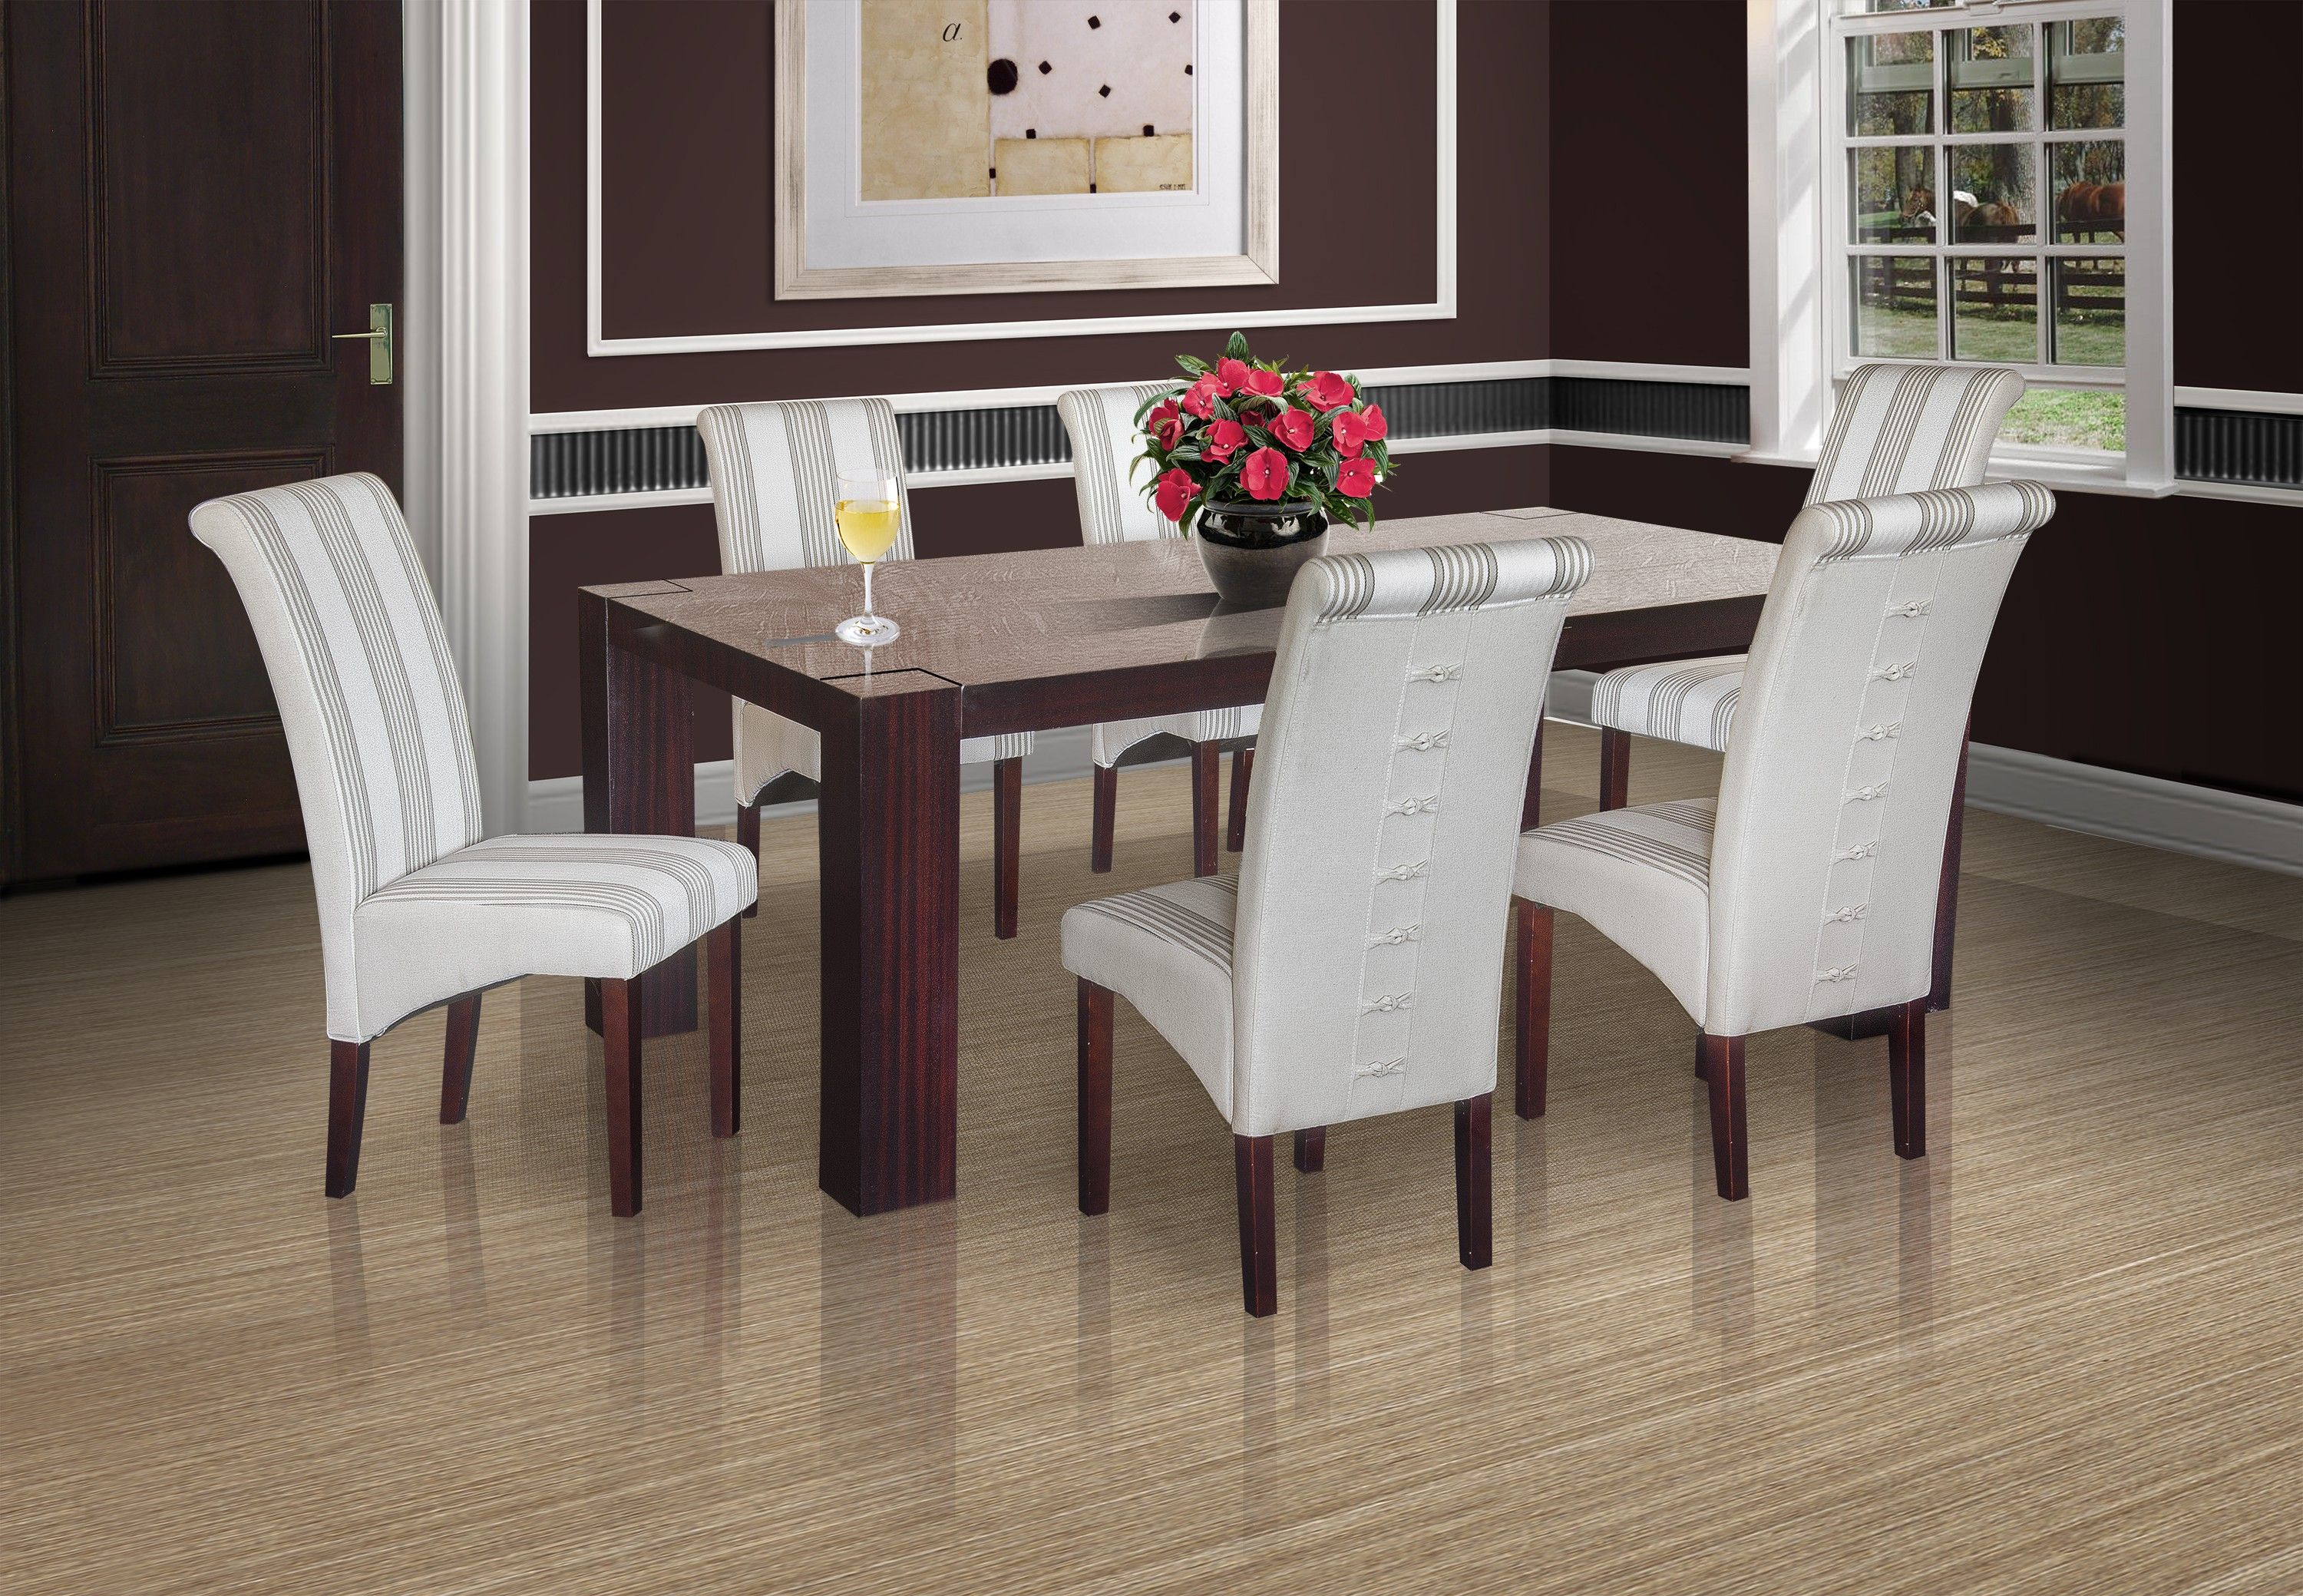 Imola Ritz 7 Pce Dining Room Suite B Dining Room Suites Furniture Affordable Furniture